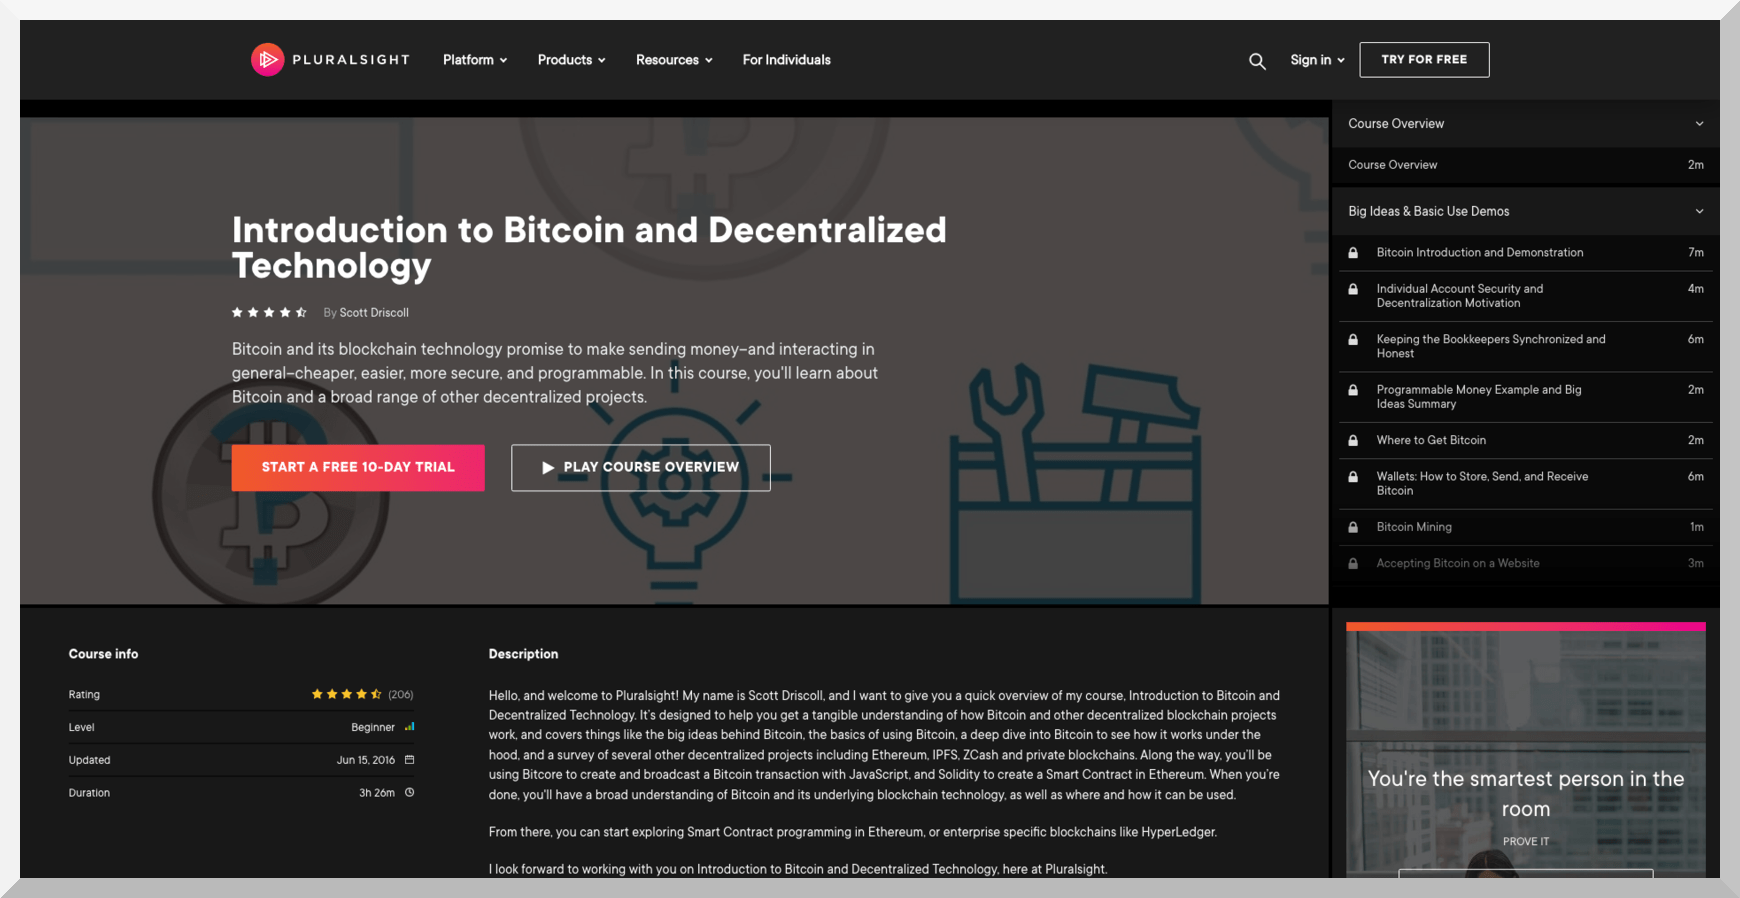 Introduction to Bitcoin and Decentralized Technology – Pluralsight